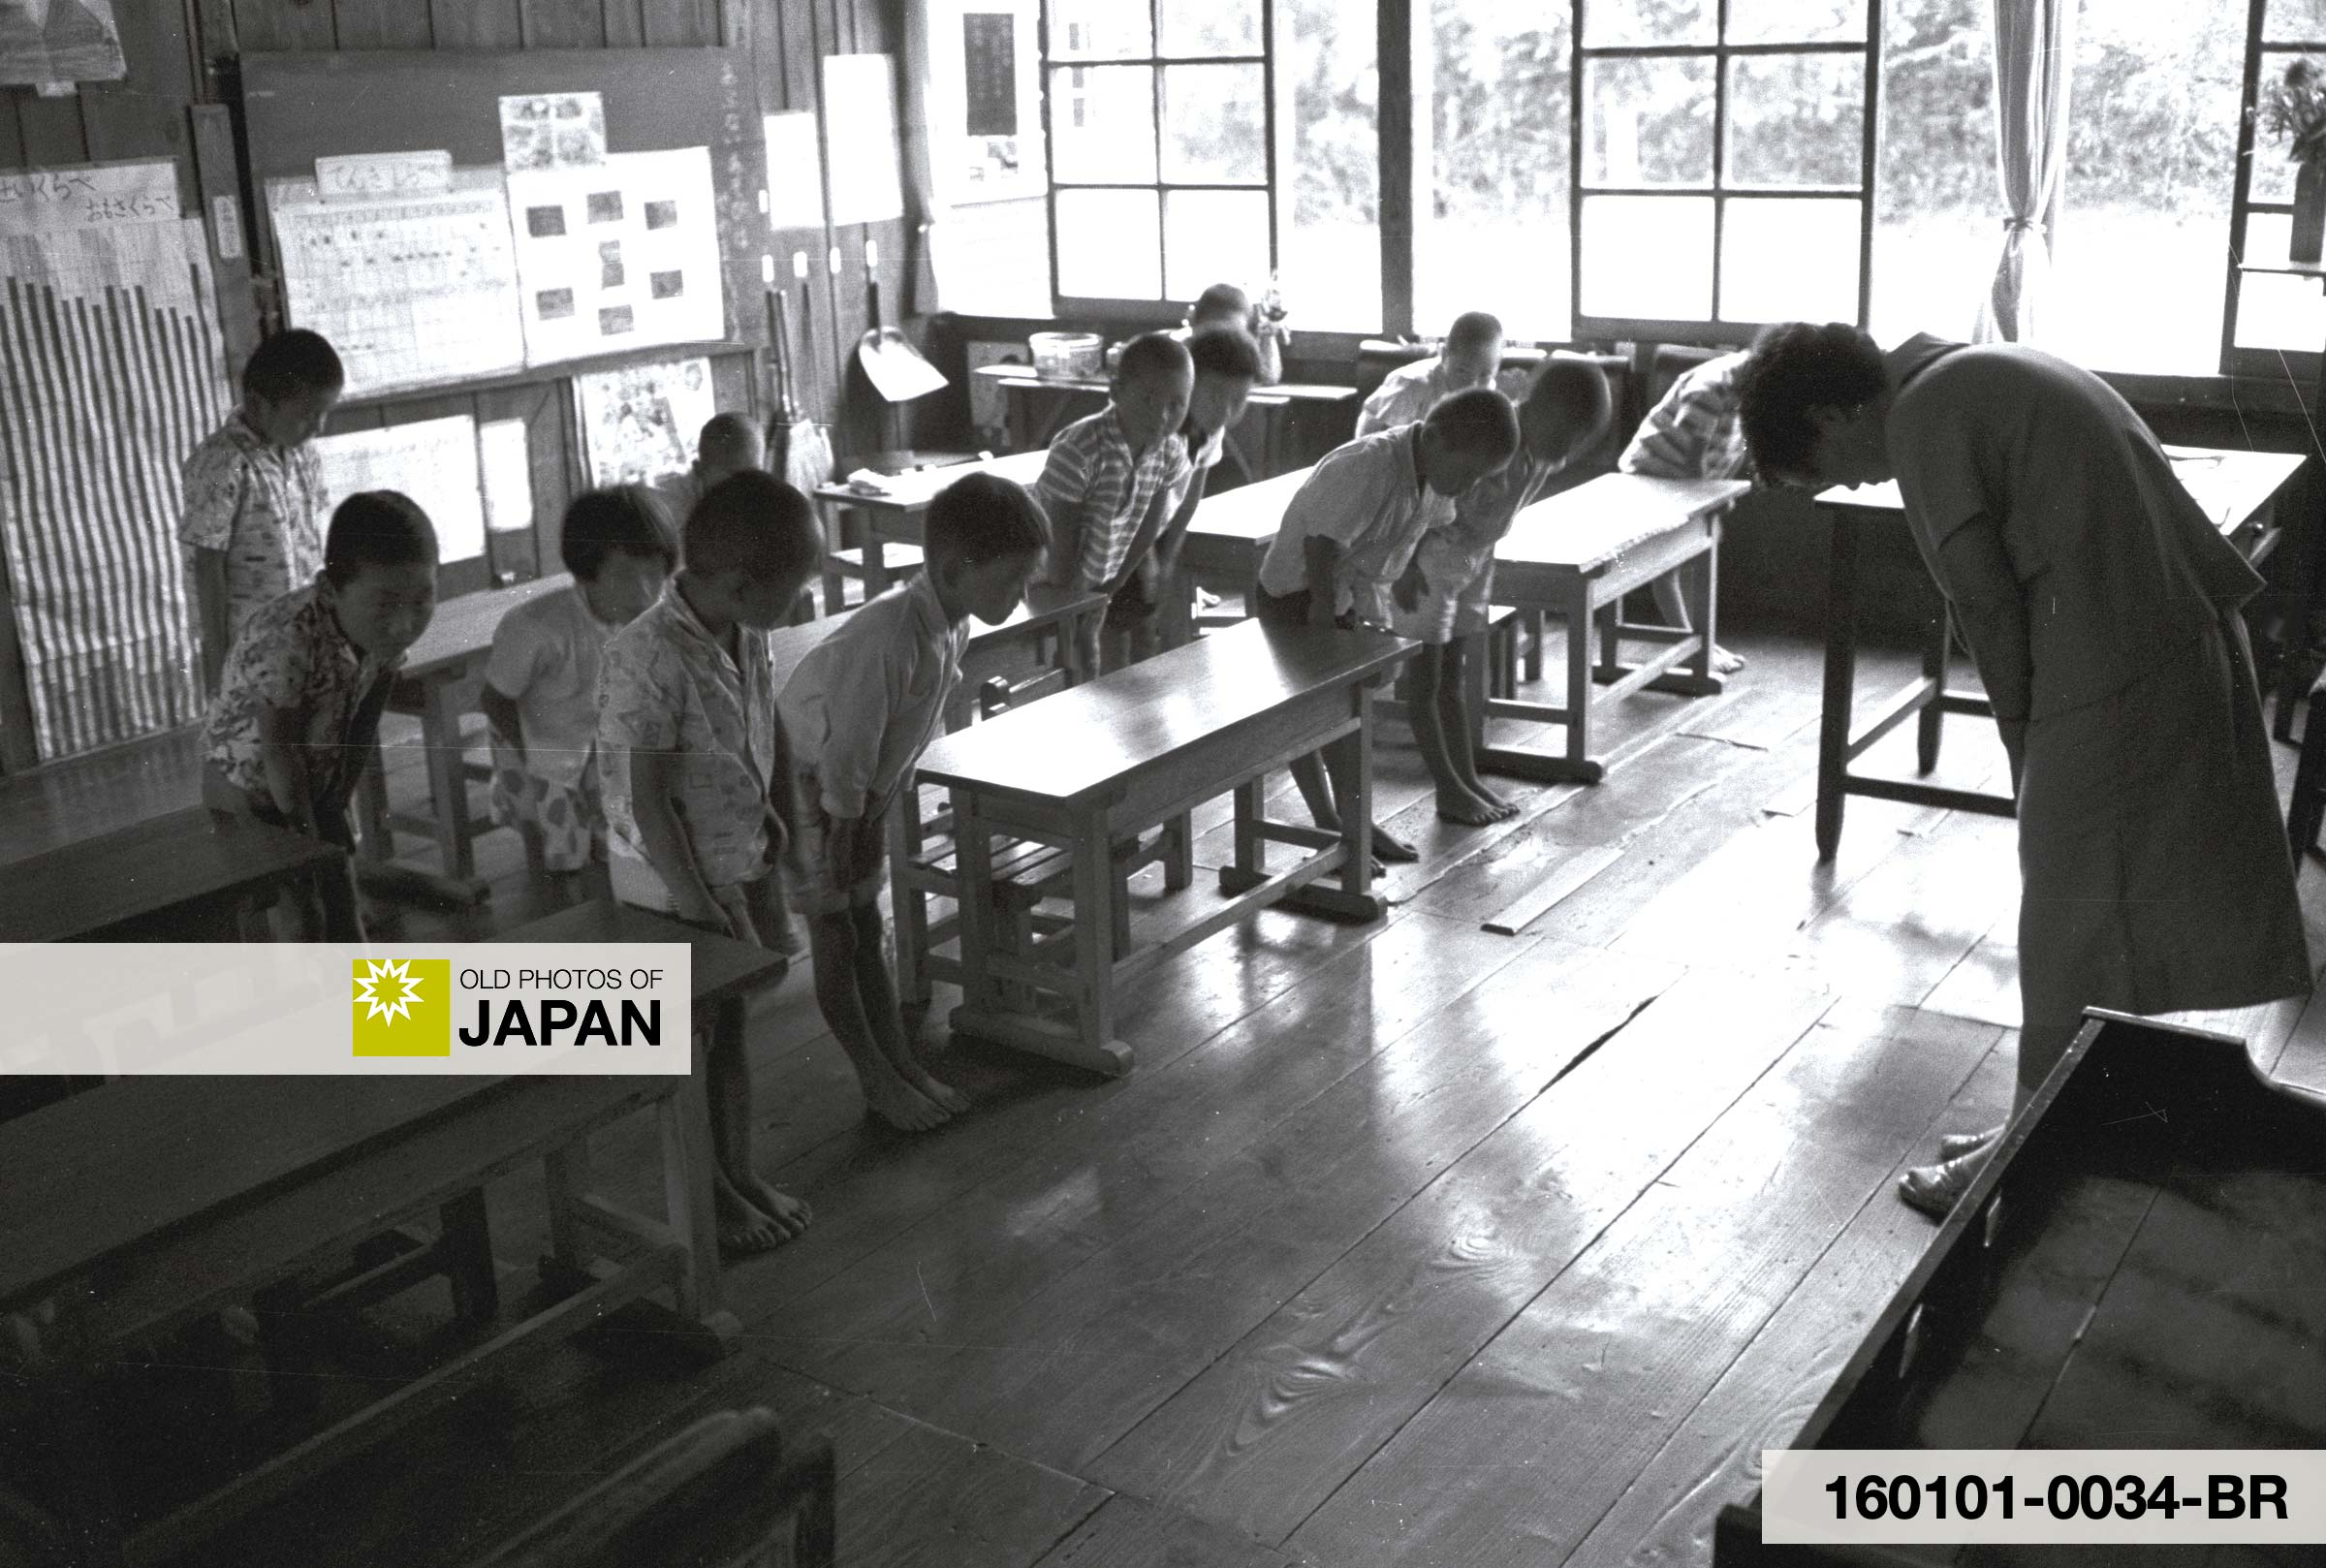 Children and a teacher bow to each other, 1960